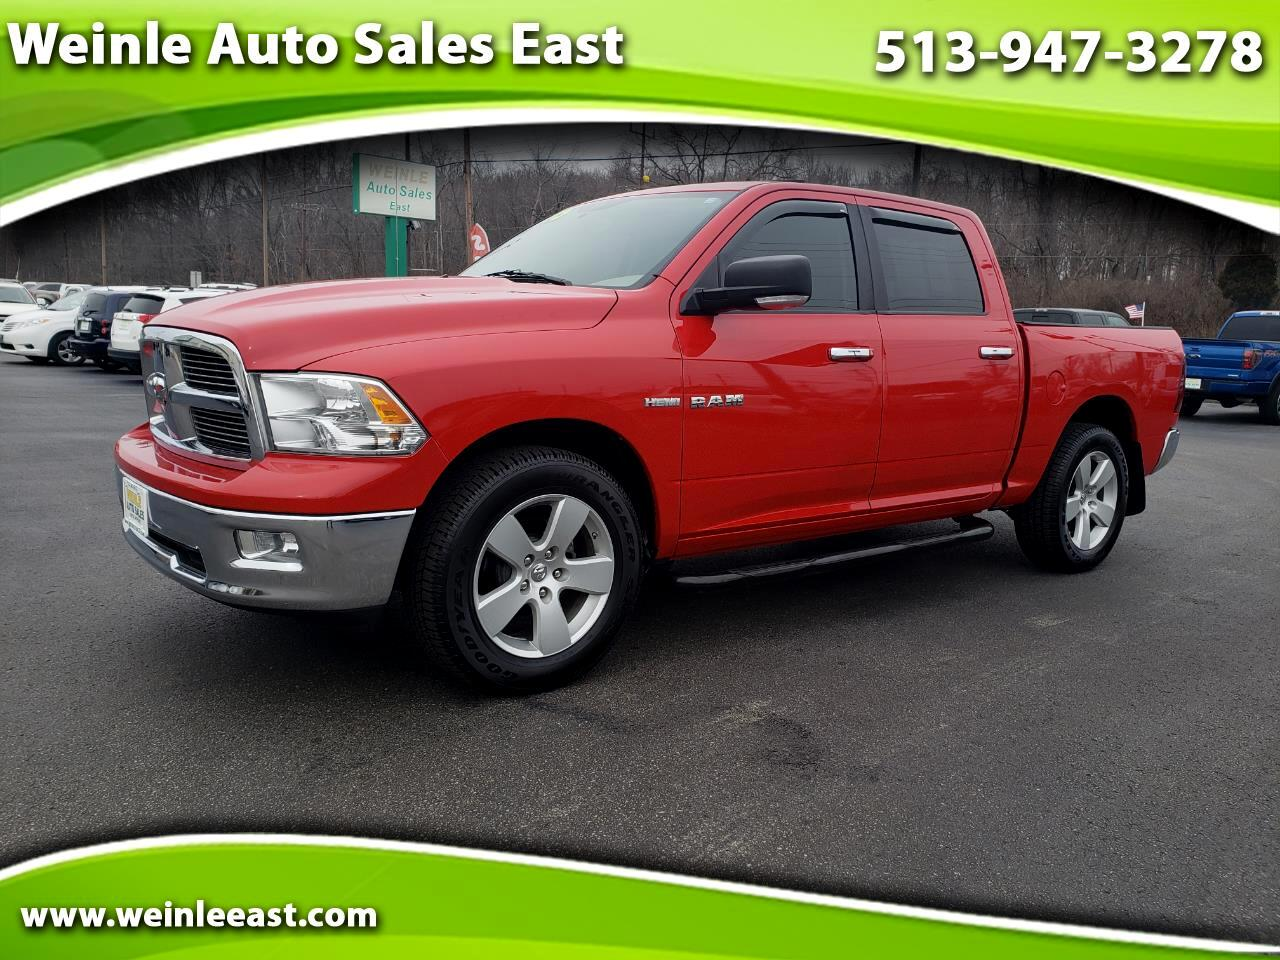 2009 Dodge Ram 1500 CREW CAB BIG HORN SLT W/SPORT PACKAGE SHARP